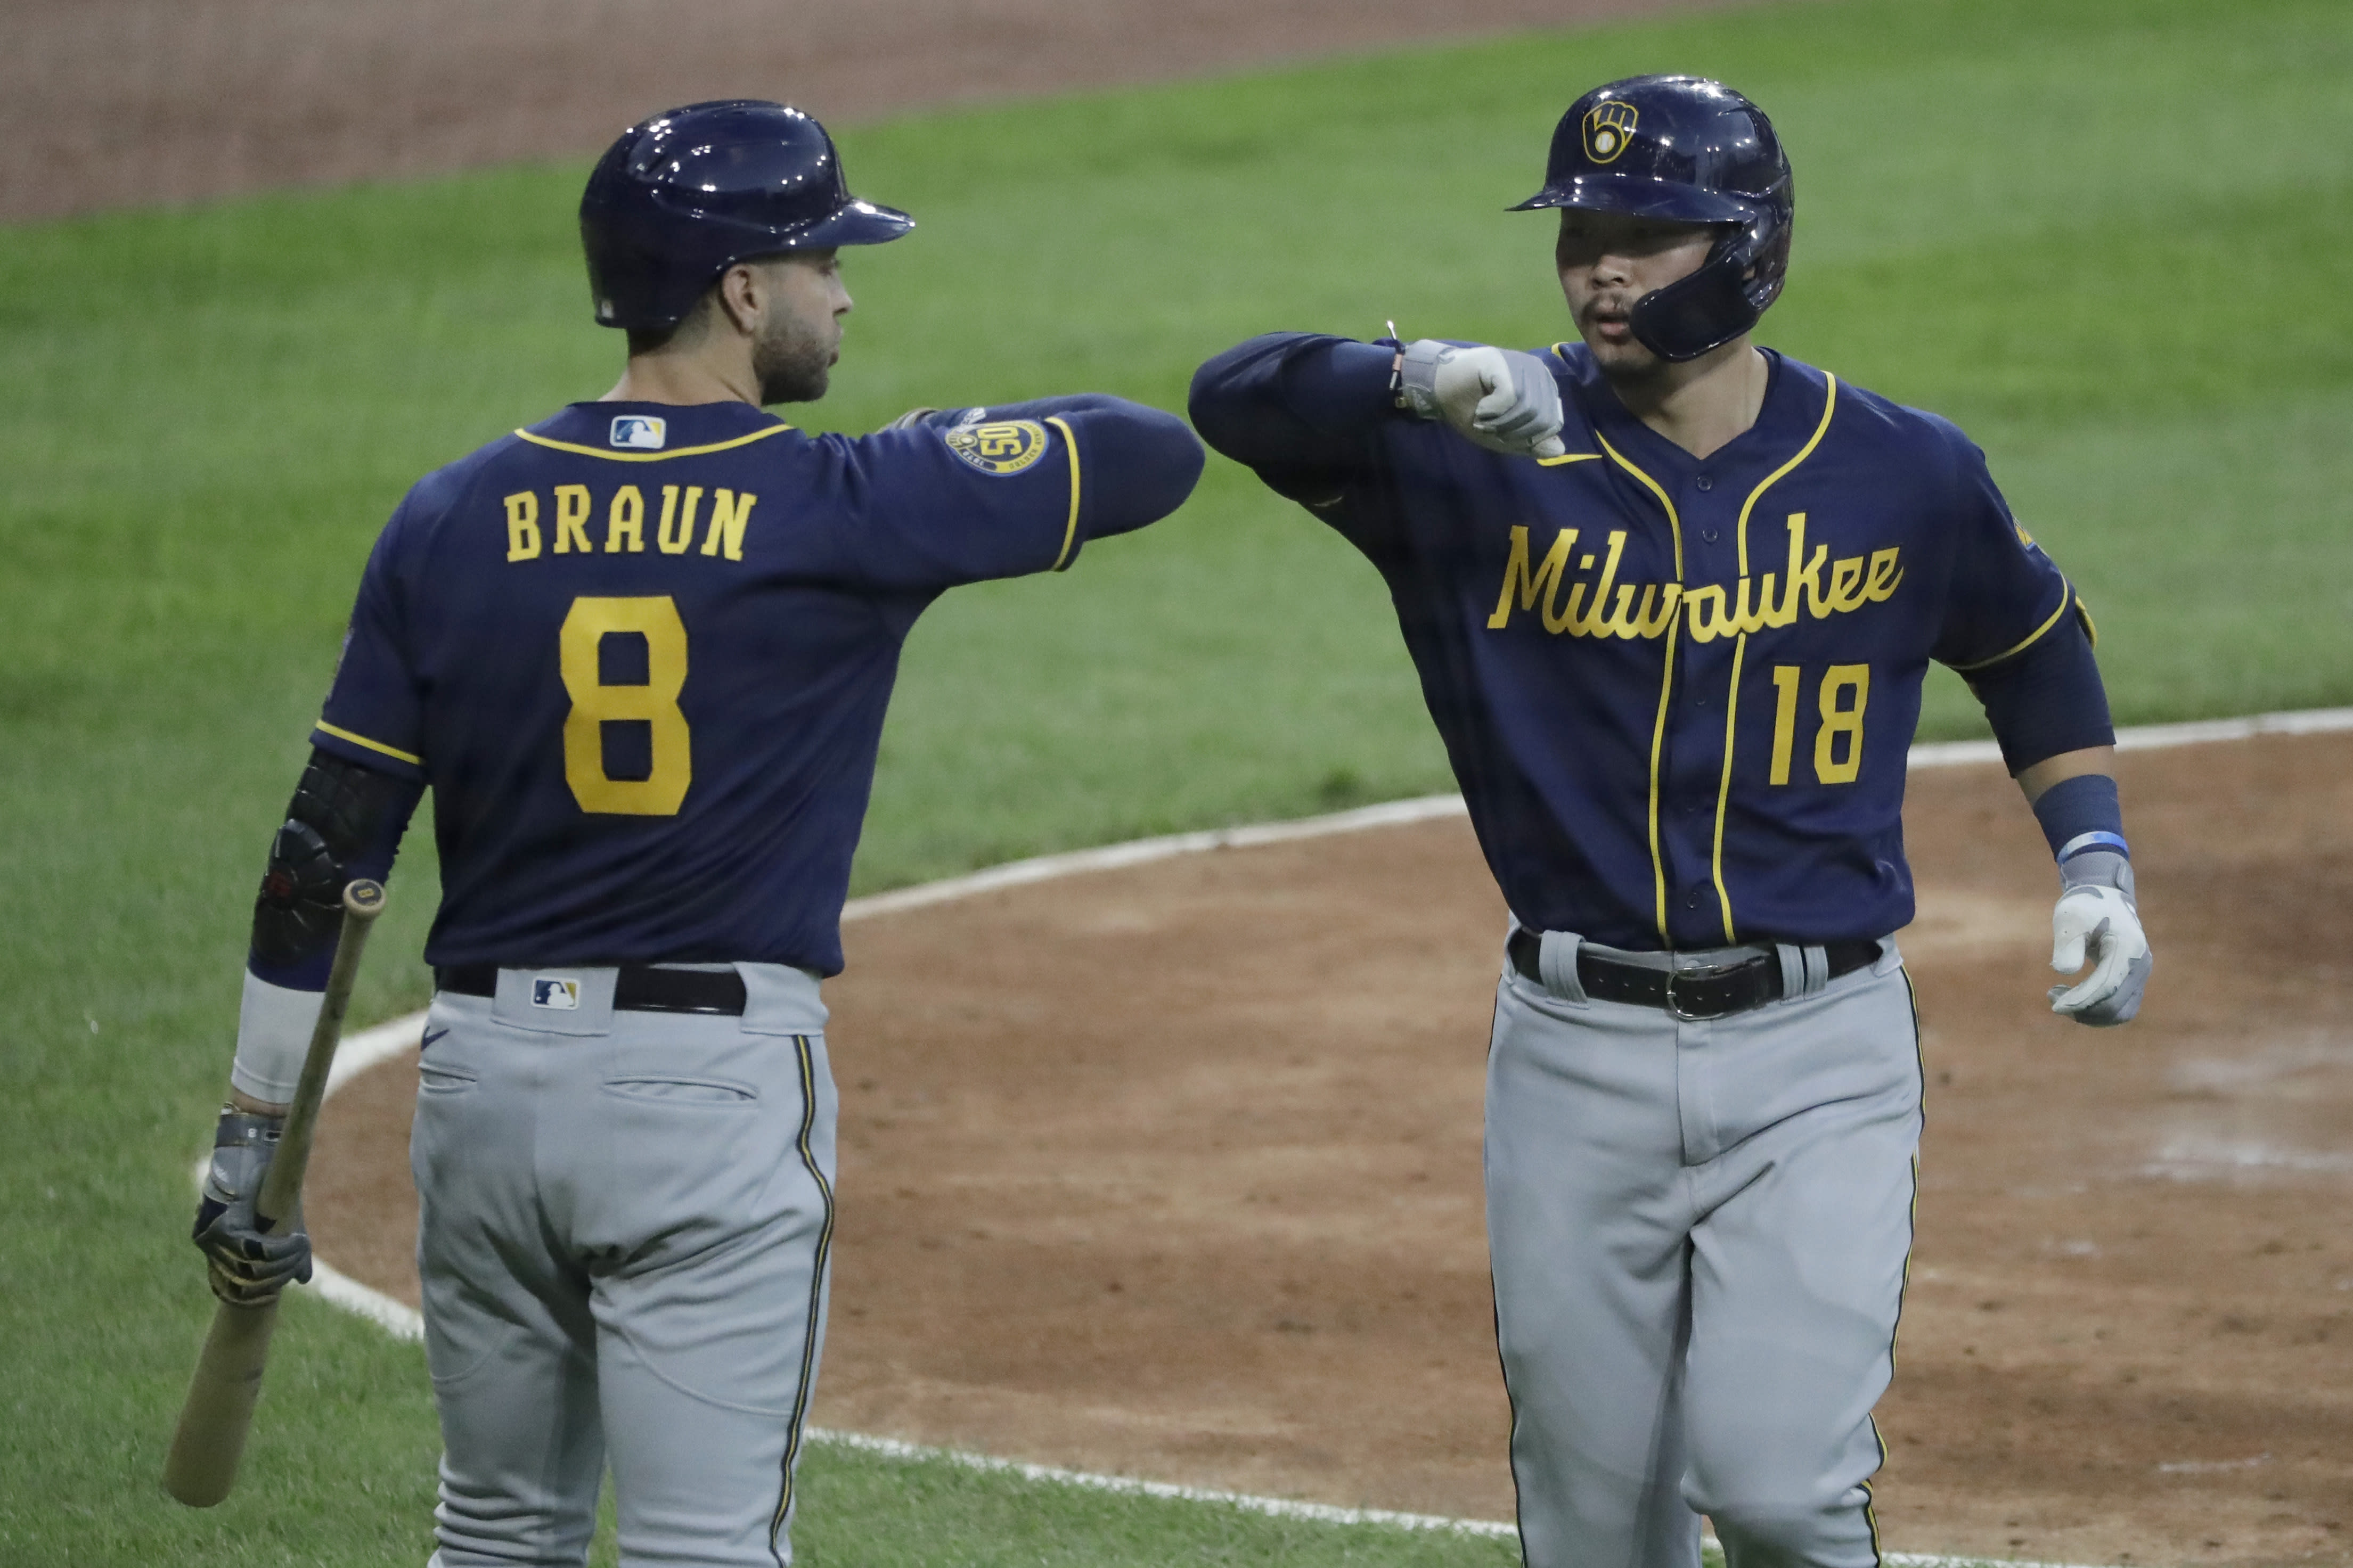 Milwaukee Brewers' Keston Hiura, right, celebrates with Ryan Braun after hitting a solo home run against the Chicago White Sox during the fourth inning of an exhibition baseball game at Guaranteed Rate Field in Chicago, Wednesday, July 22, 2020. (AP Photo/Nam Y. Huh)